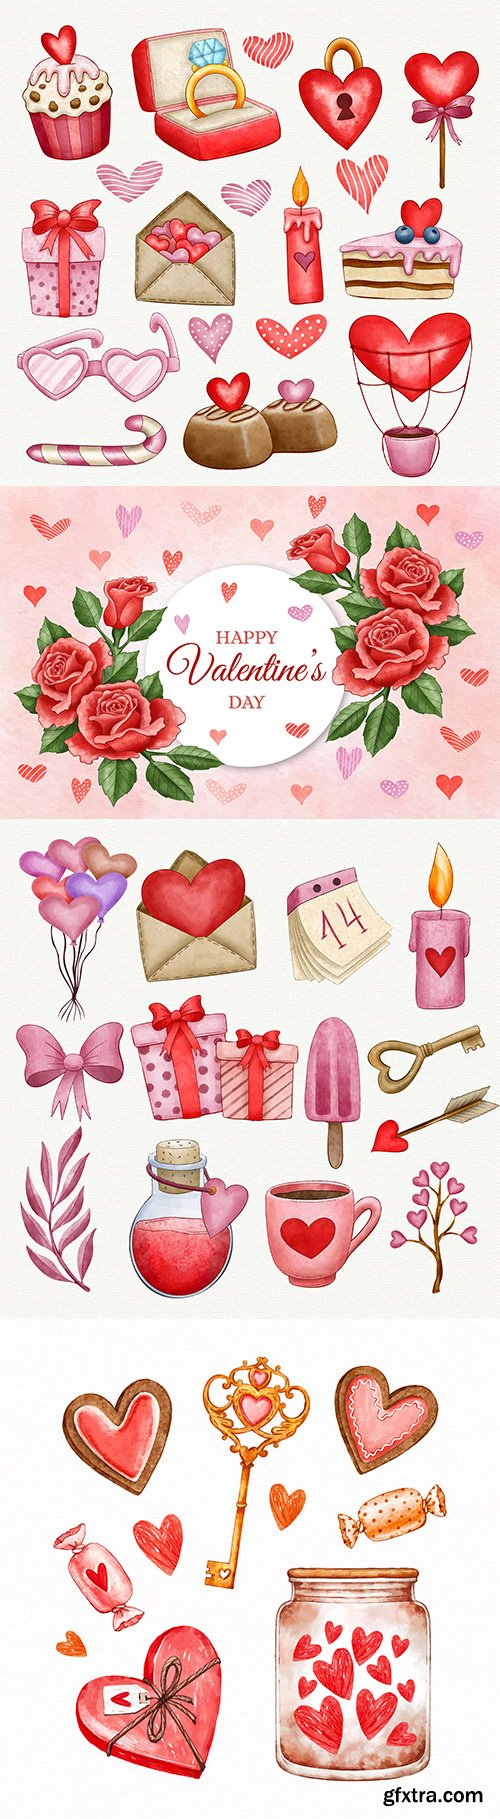 Watercolor Valentine's Day background and decorative elements